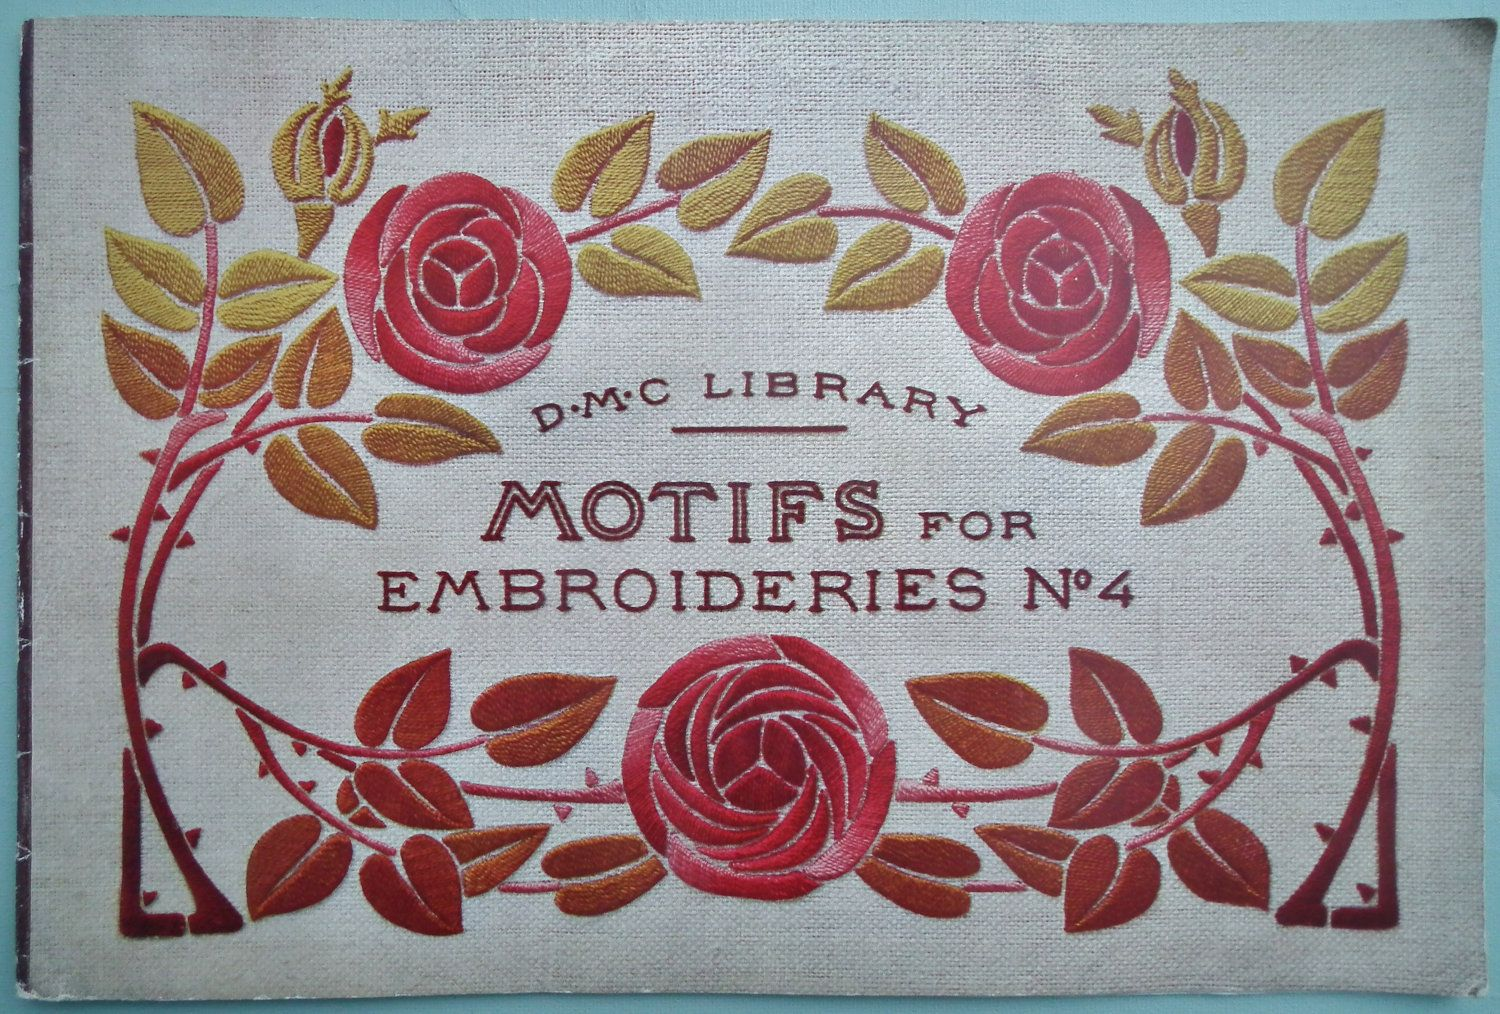 vintage art nouveau embroidery | Vintage Embroidery Book 1920s Motifs for by sewmuchfrippery